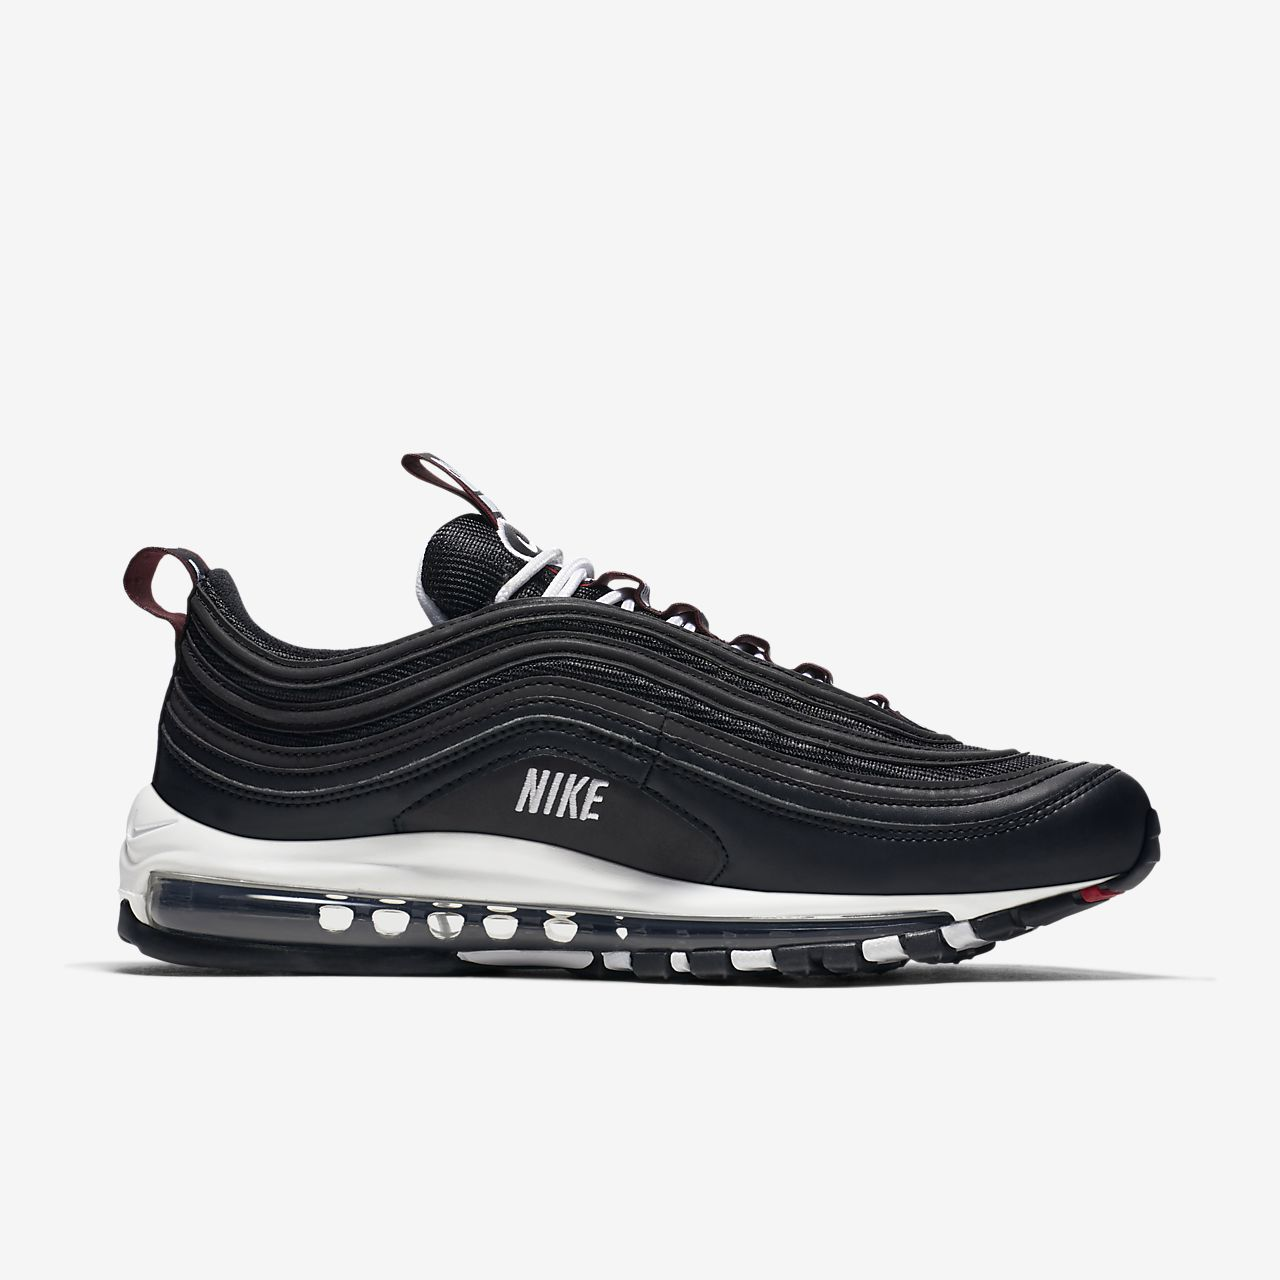 official photos 07a67 93df6 ... Nike Air Max 97 Premium Men s Shoe